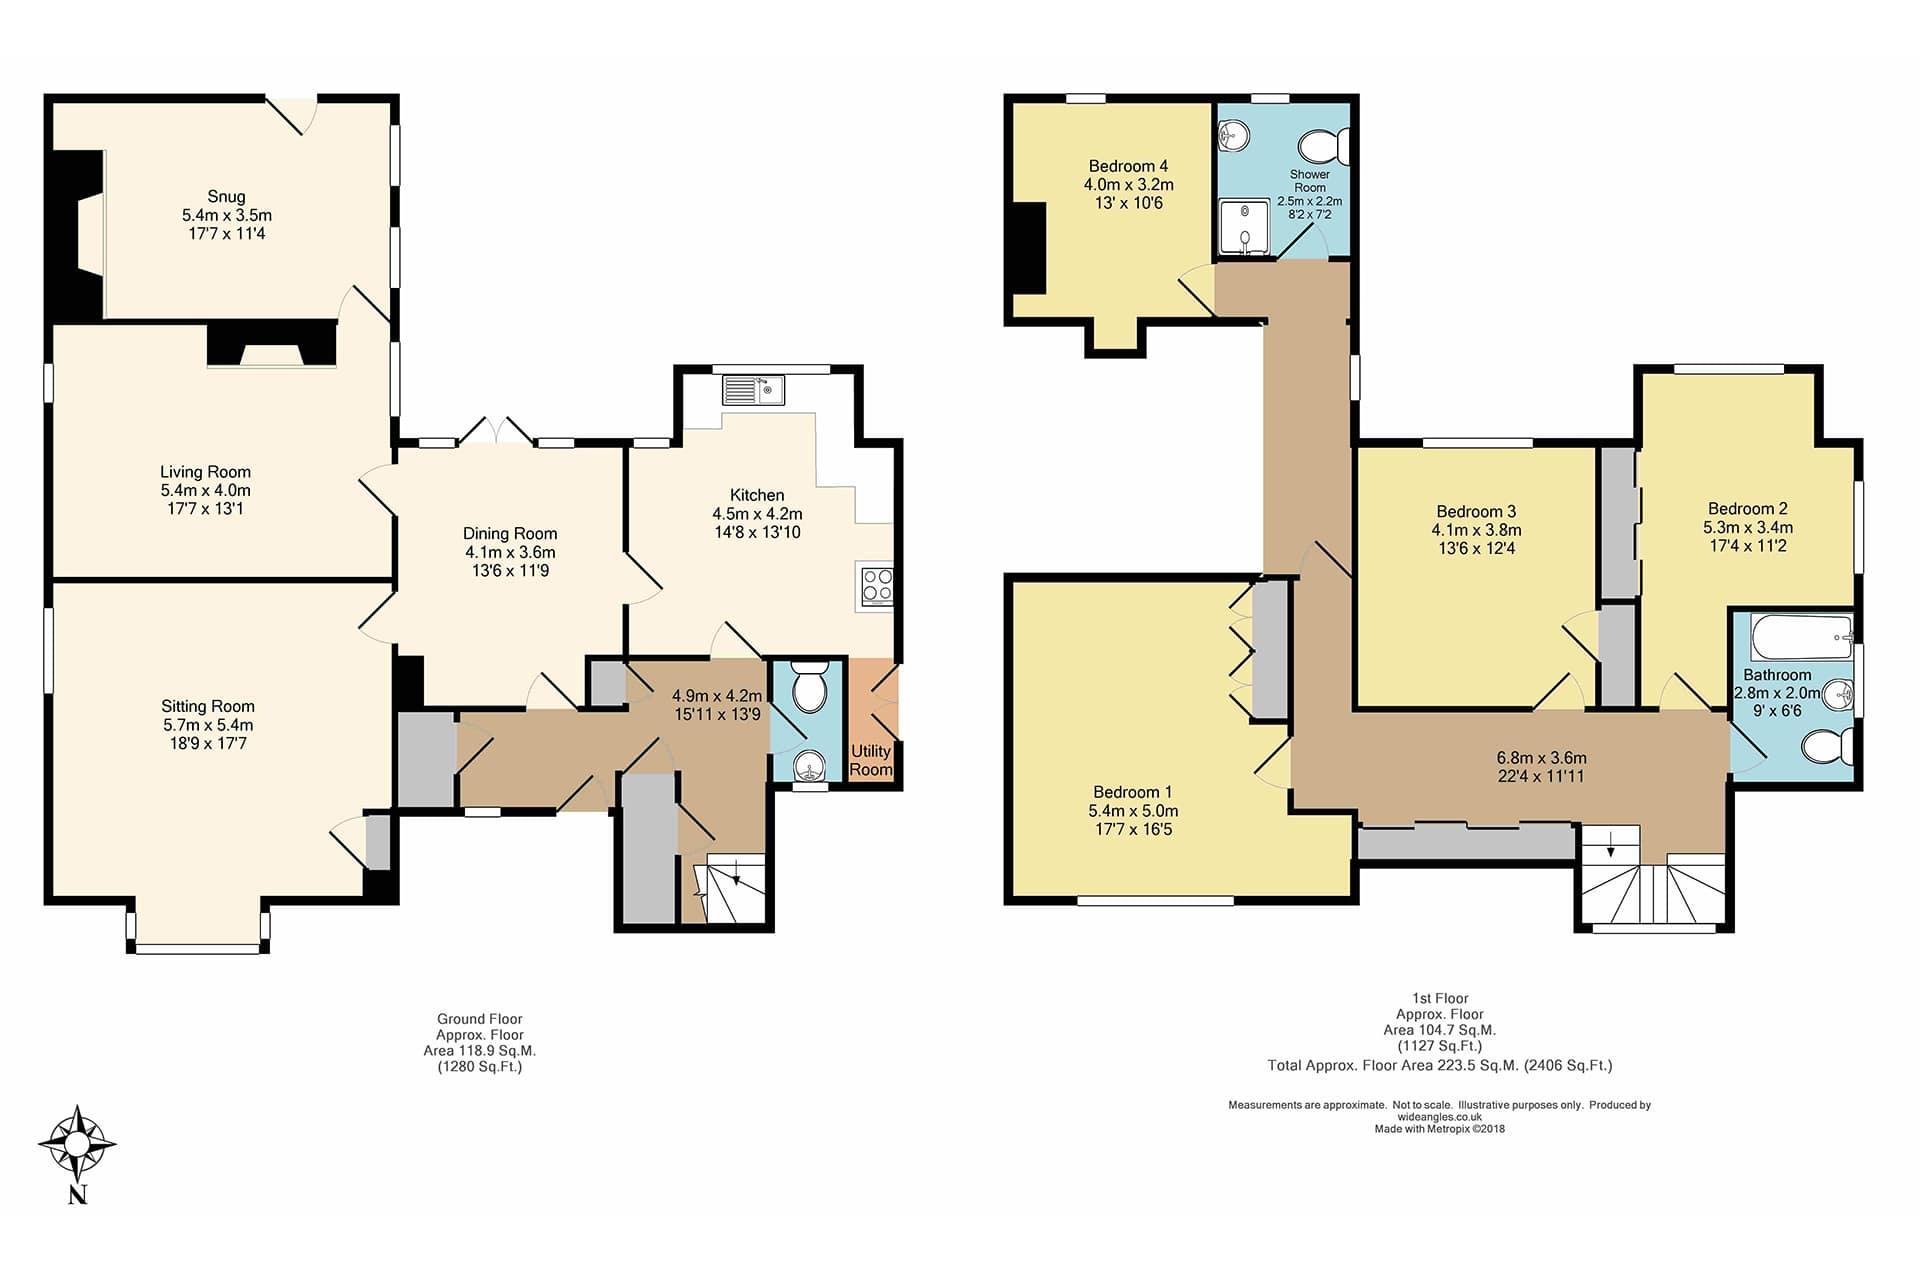 Wide Angles floor plan